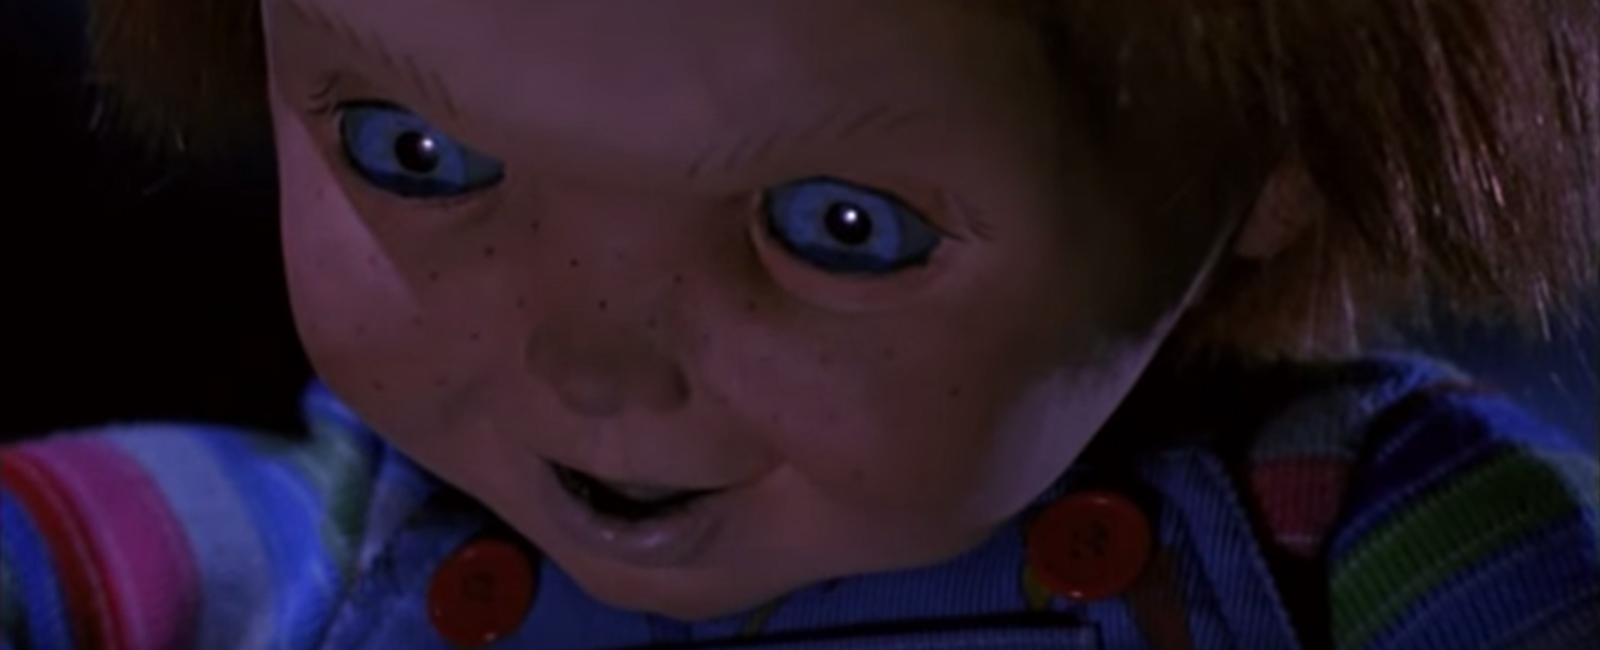 Chucky pop uit Child's Play 2 (1990)